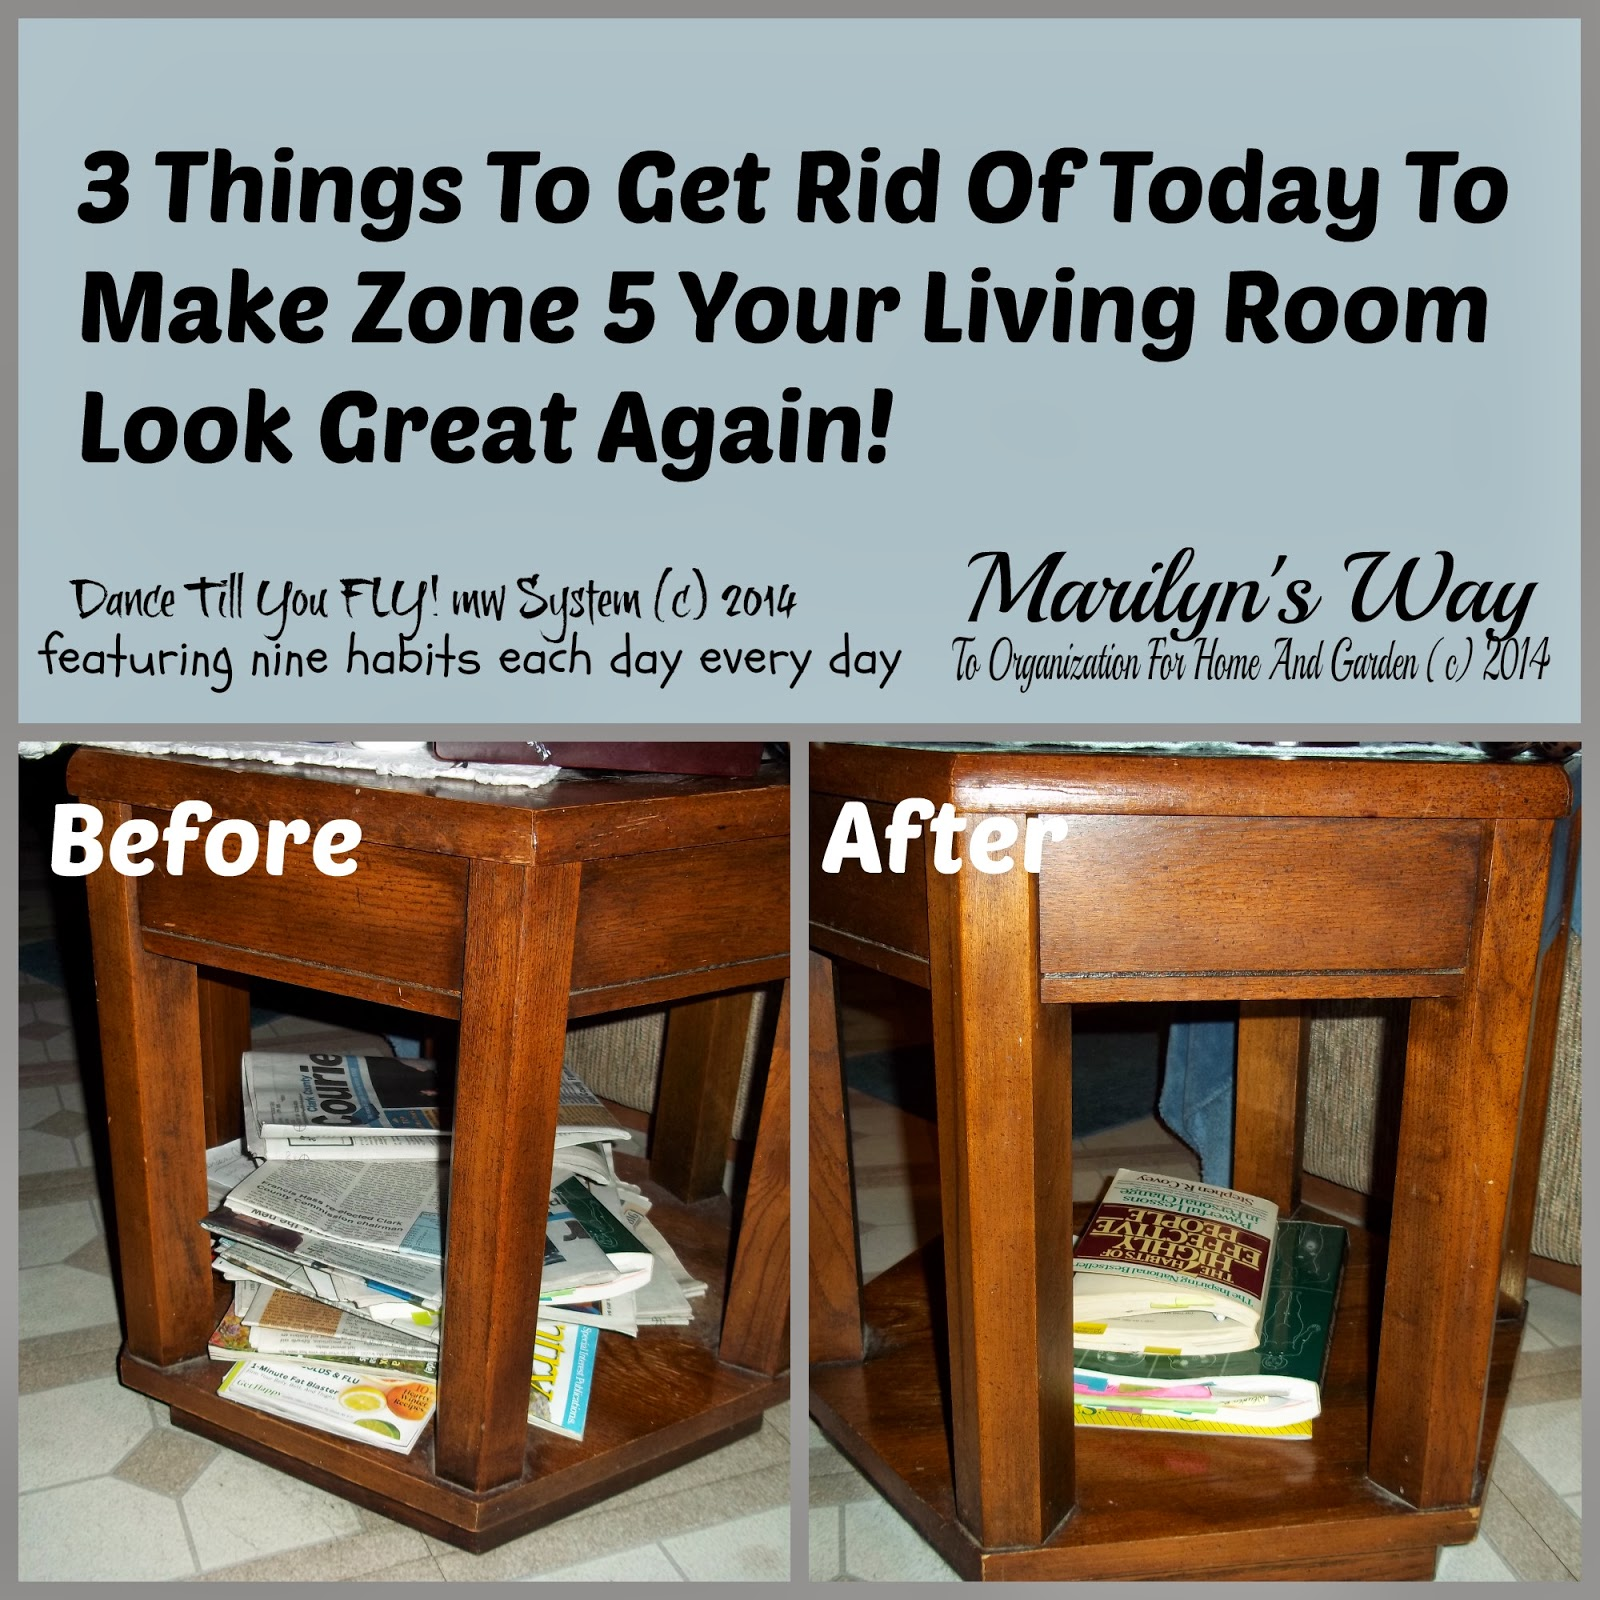 3 Things You Can Get Rid Of Today And Make Zone 5 Your ...